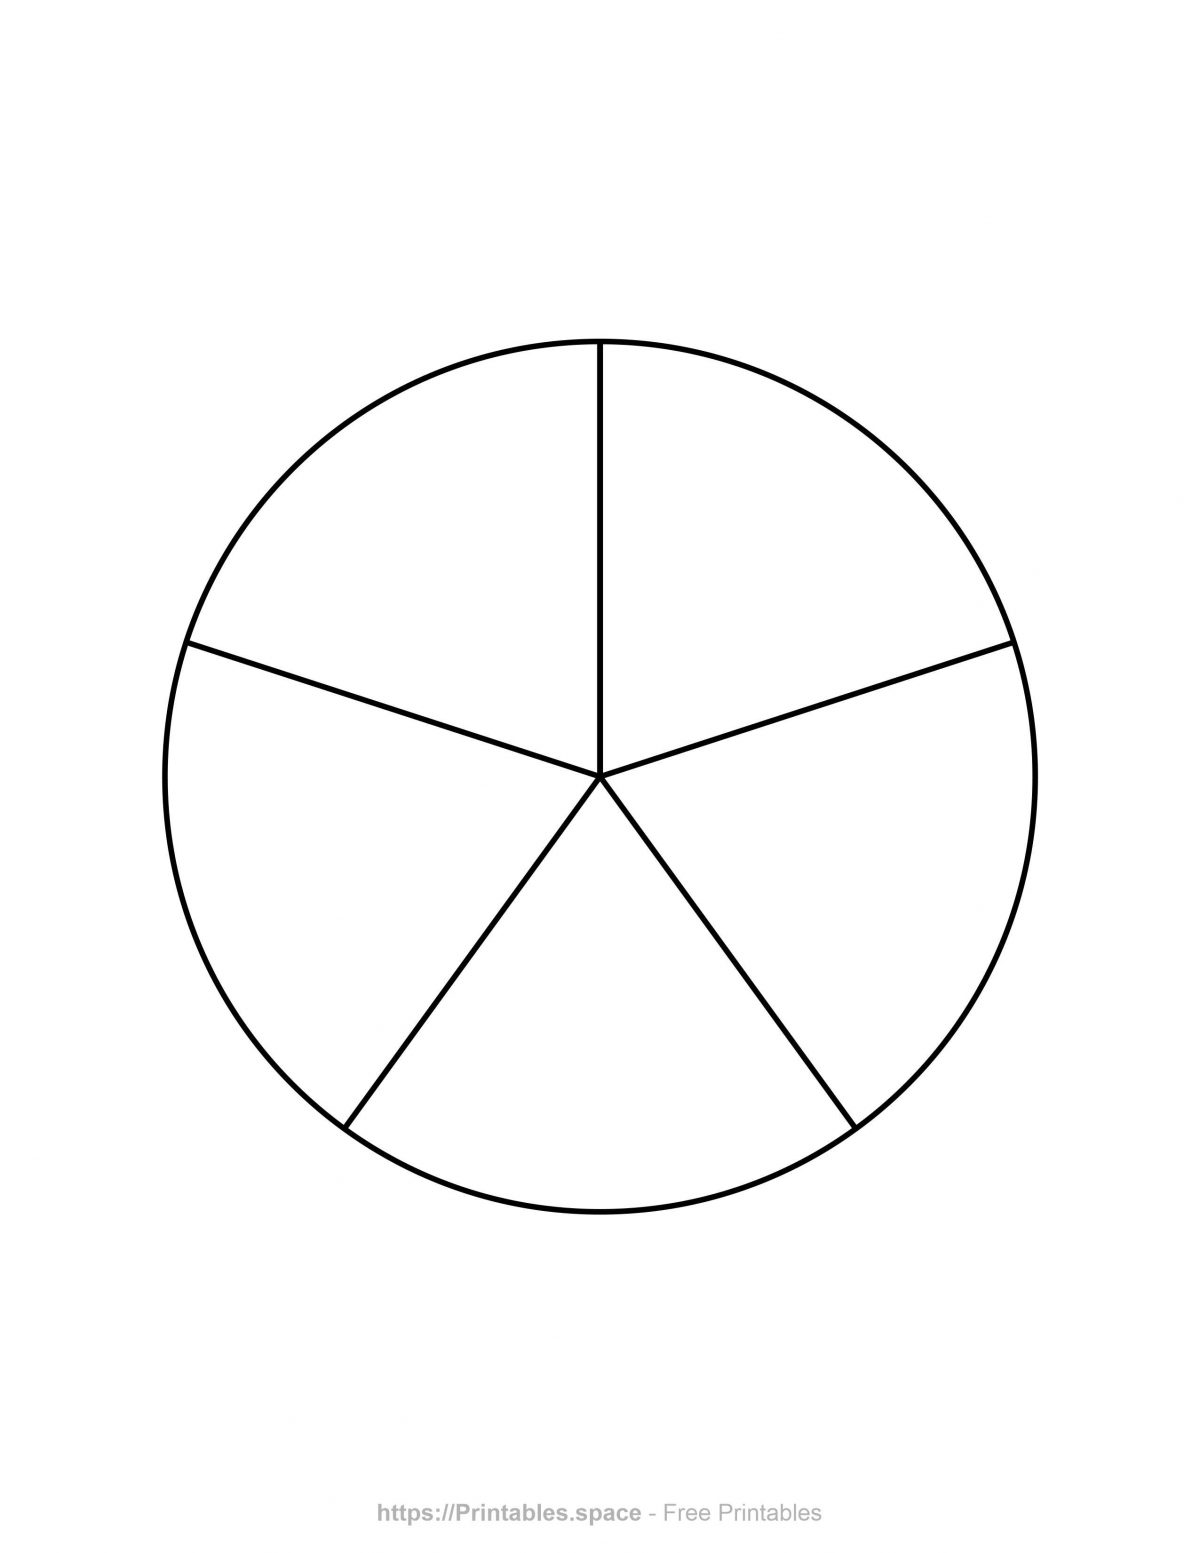 Pie Chart Template - 5 Pieces